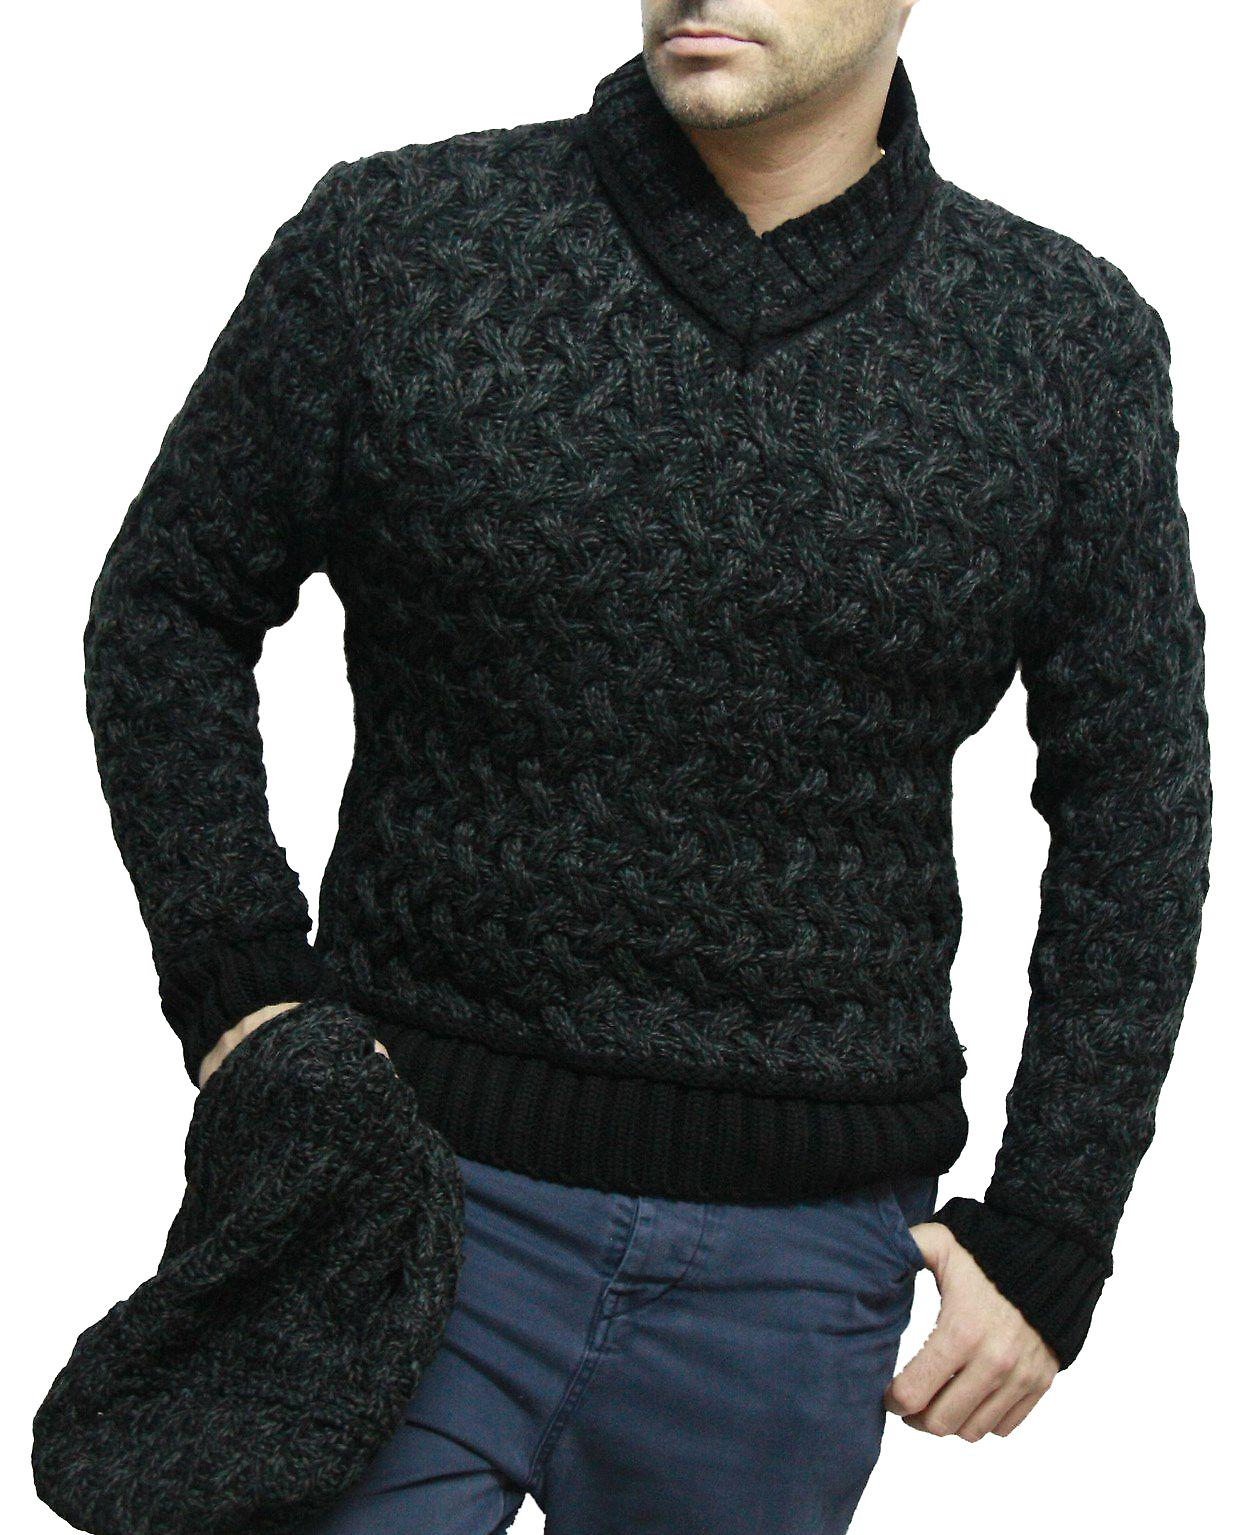 Waooh - D'Hiver Removable Collar Sweater Benji